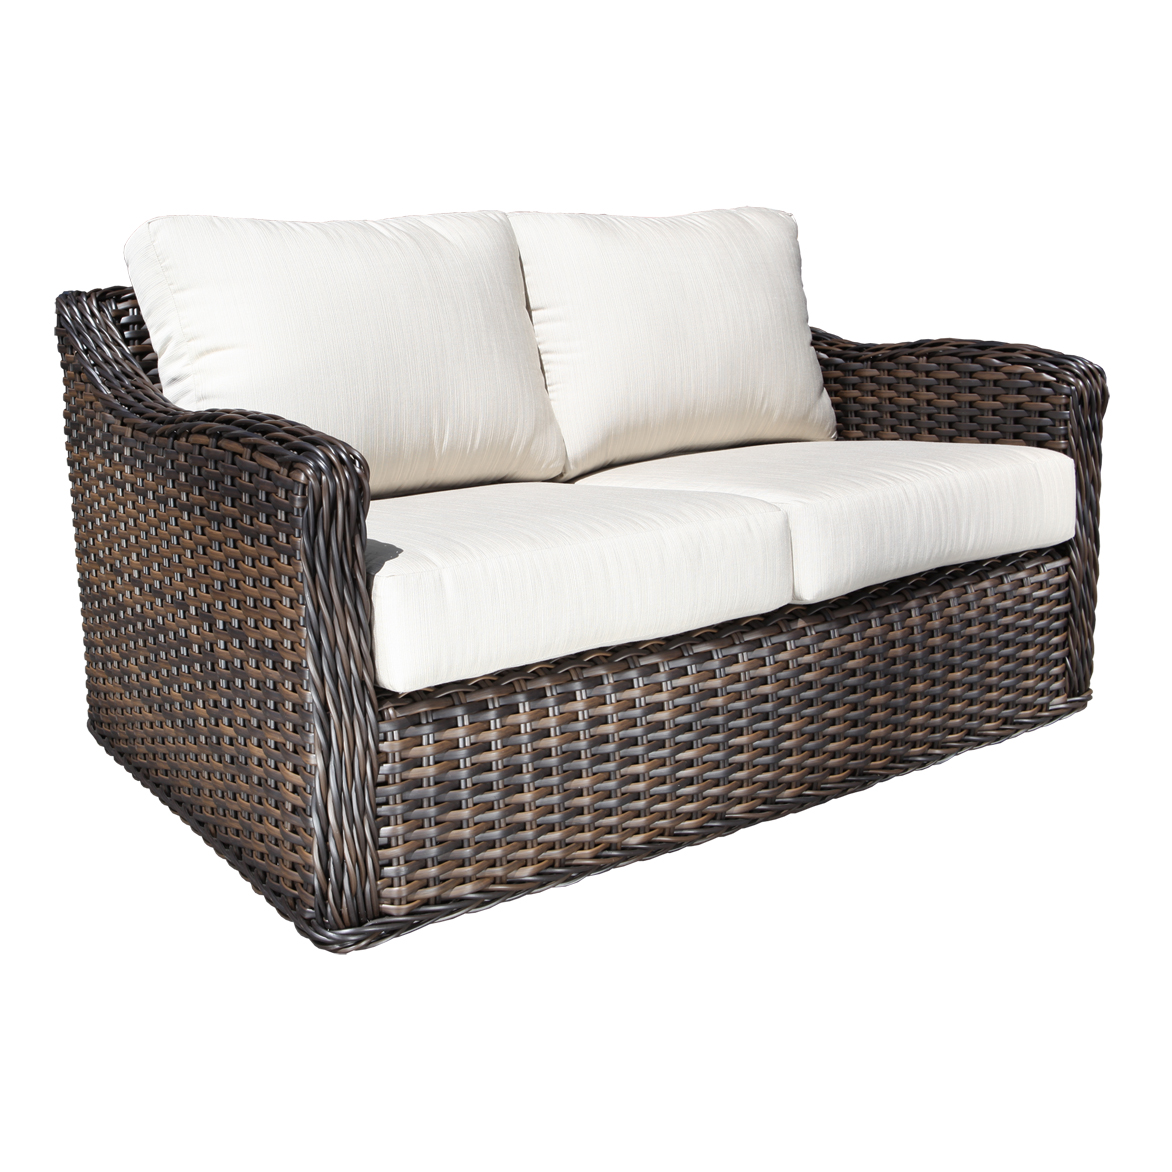 Cool resin wicker patio furniture for all weather hgnv com for Wicker outdoor furniture